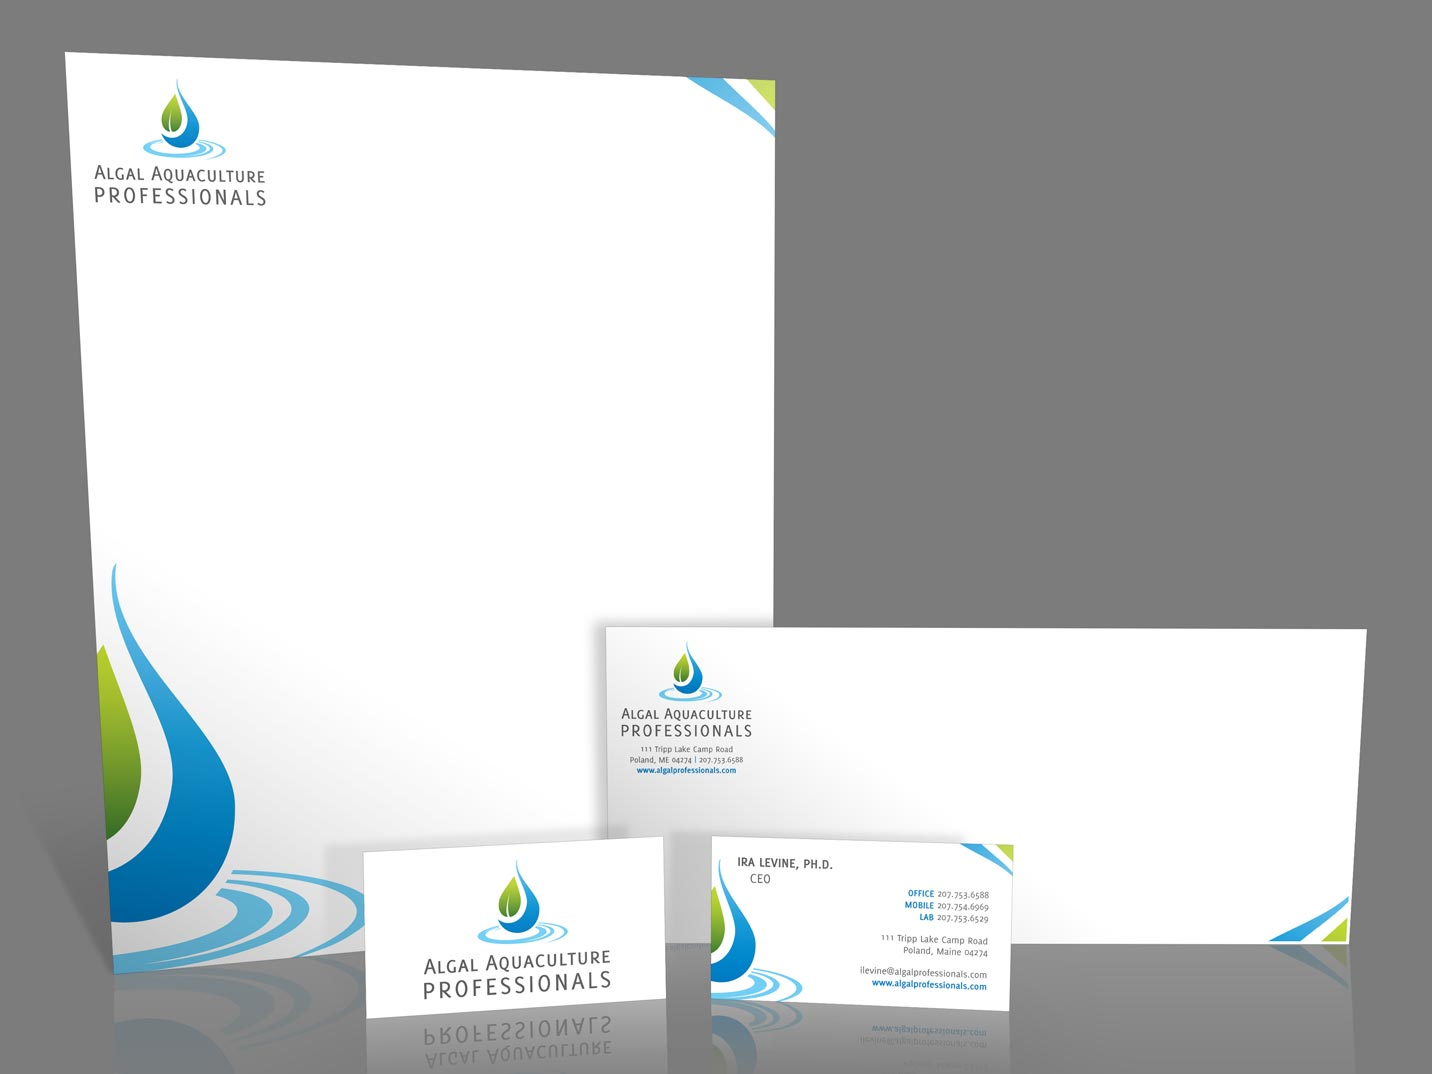 Algal Aquaculture Professionals Branding